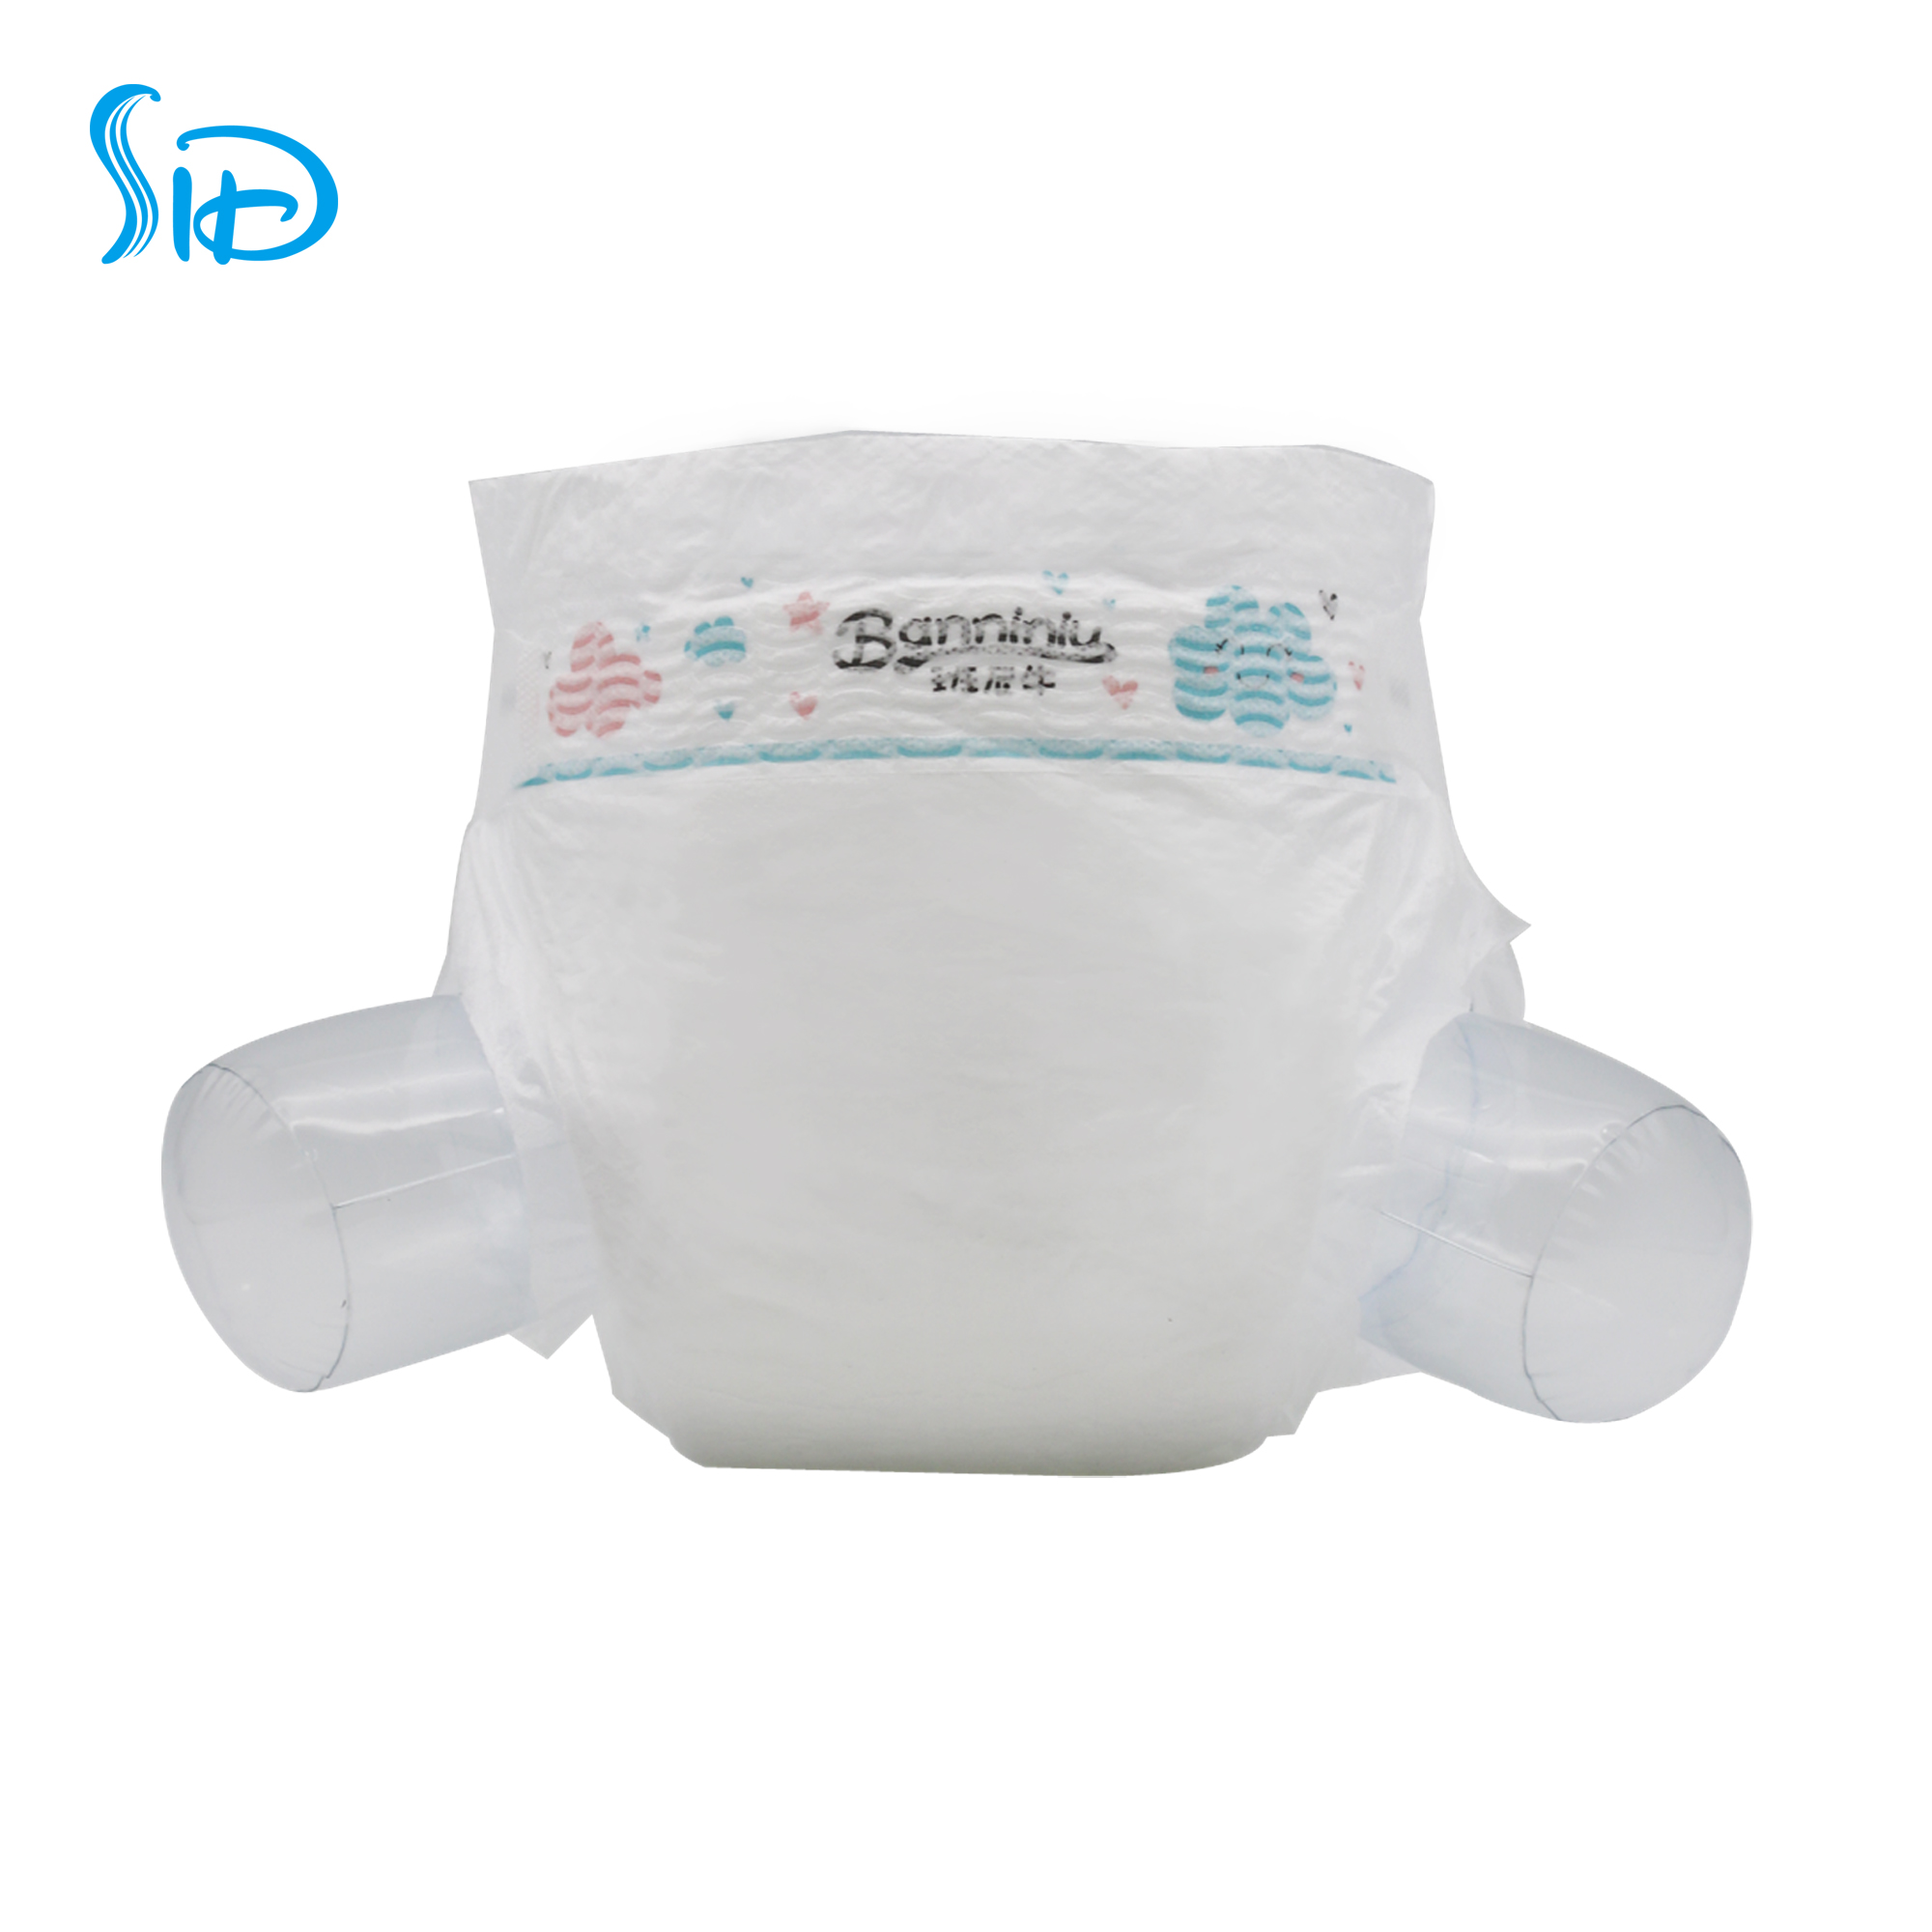 dry and clean Baby diapers baby diaper padsDisposable baby diaper